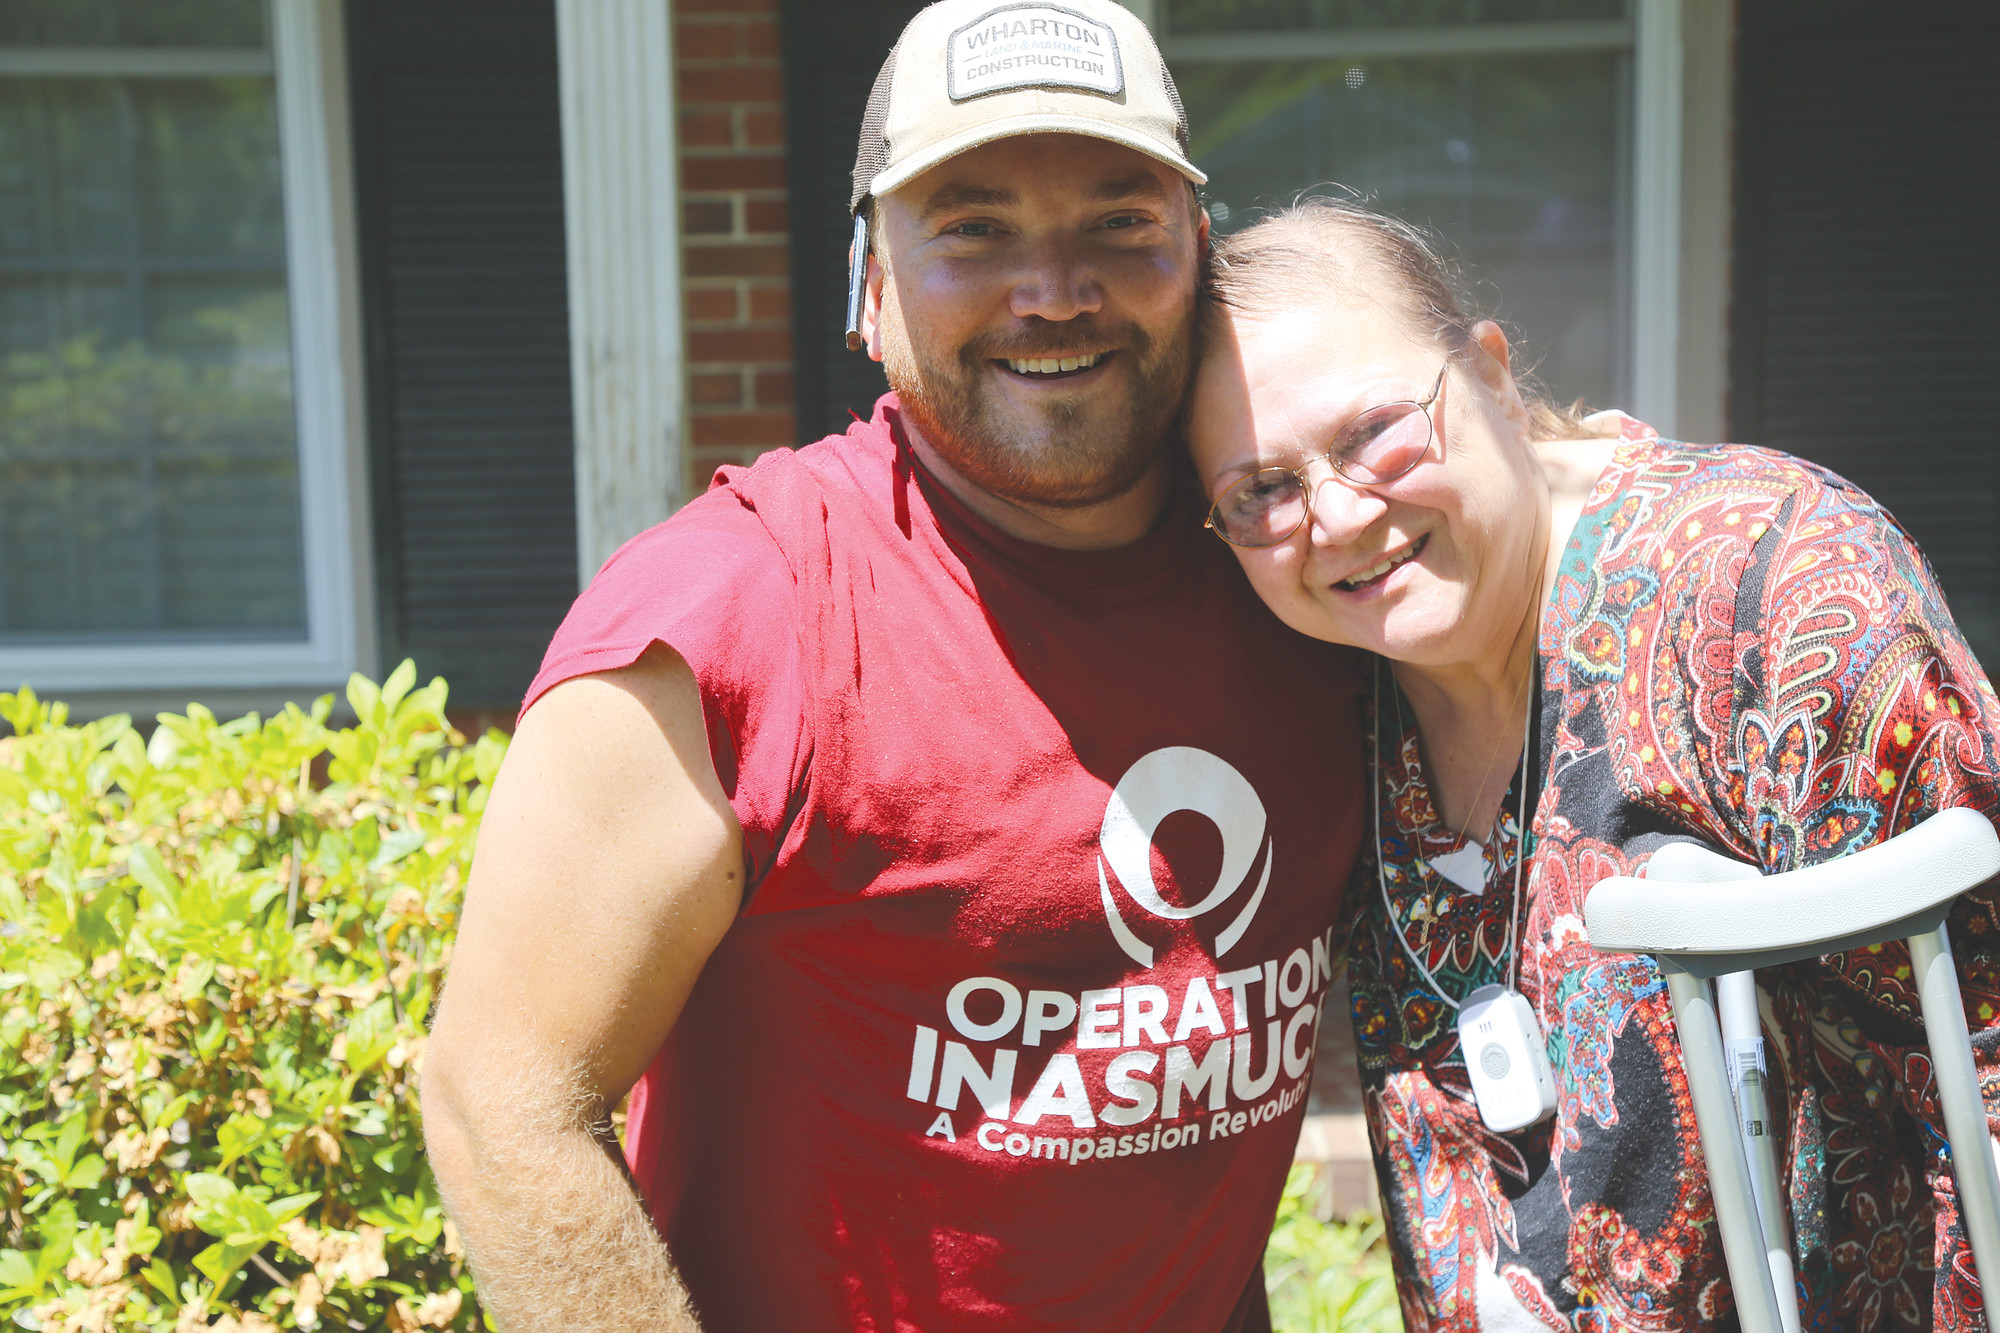 Brandon Wharton, volunteer with Operation Inasmuch on Saturday, hugs Cynthia Bell, whose home he and others made a wheelchair ramp for in order to help Bell get out and about and visit her mother.